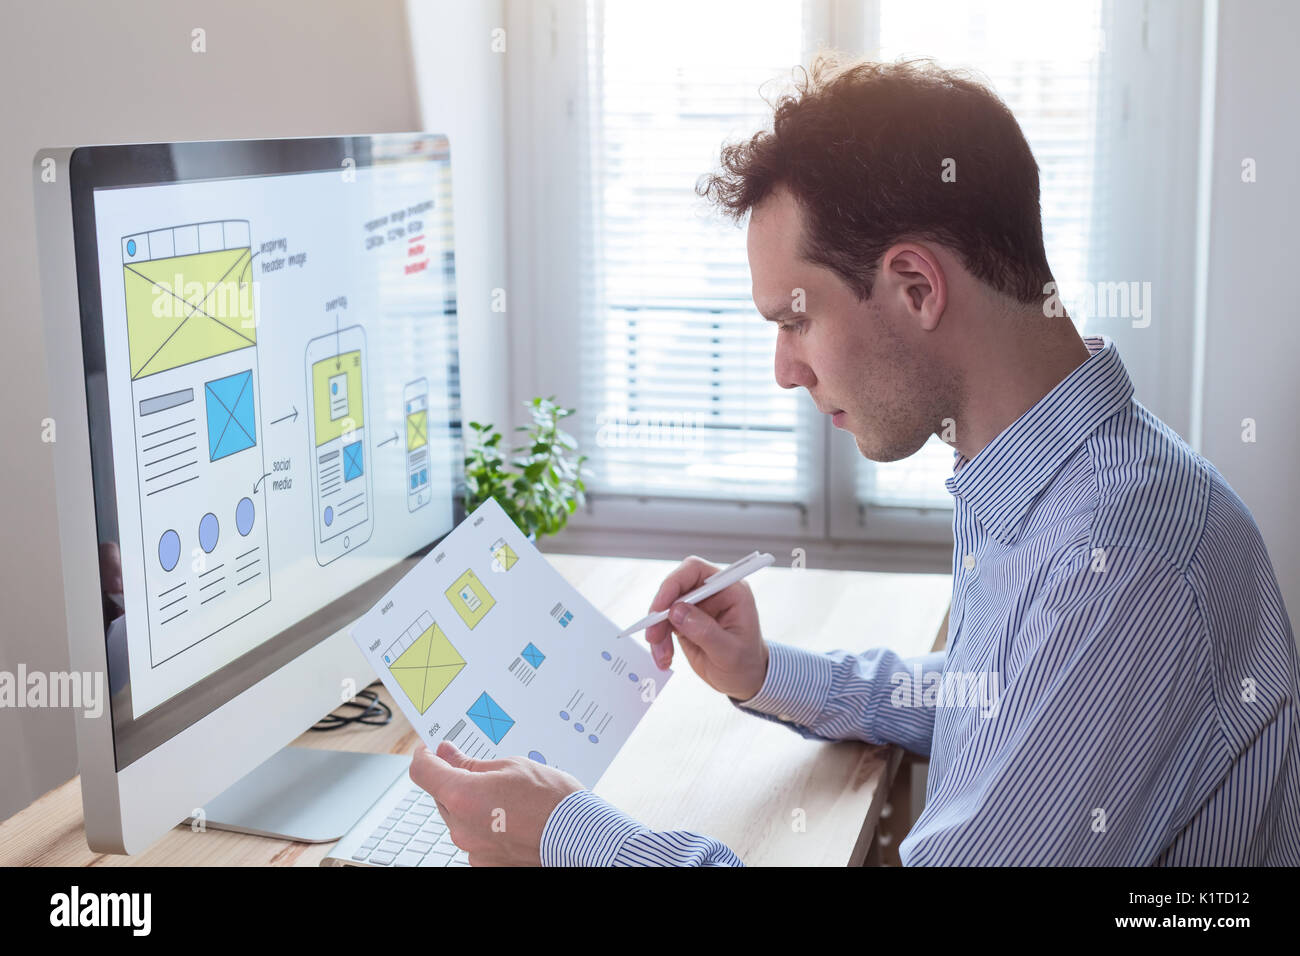 Website UI/UX front end designer reading client specification document and sketching wireframe layout design for responsive web content - Stock Image